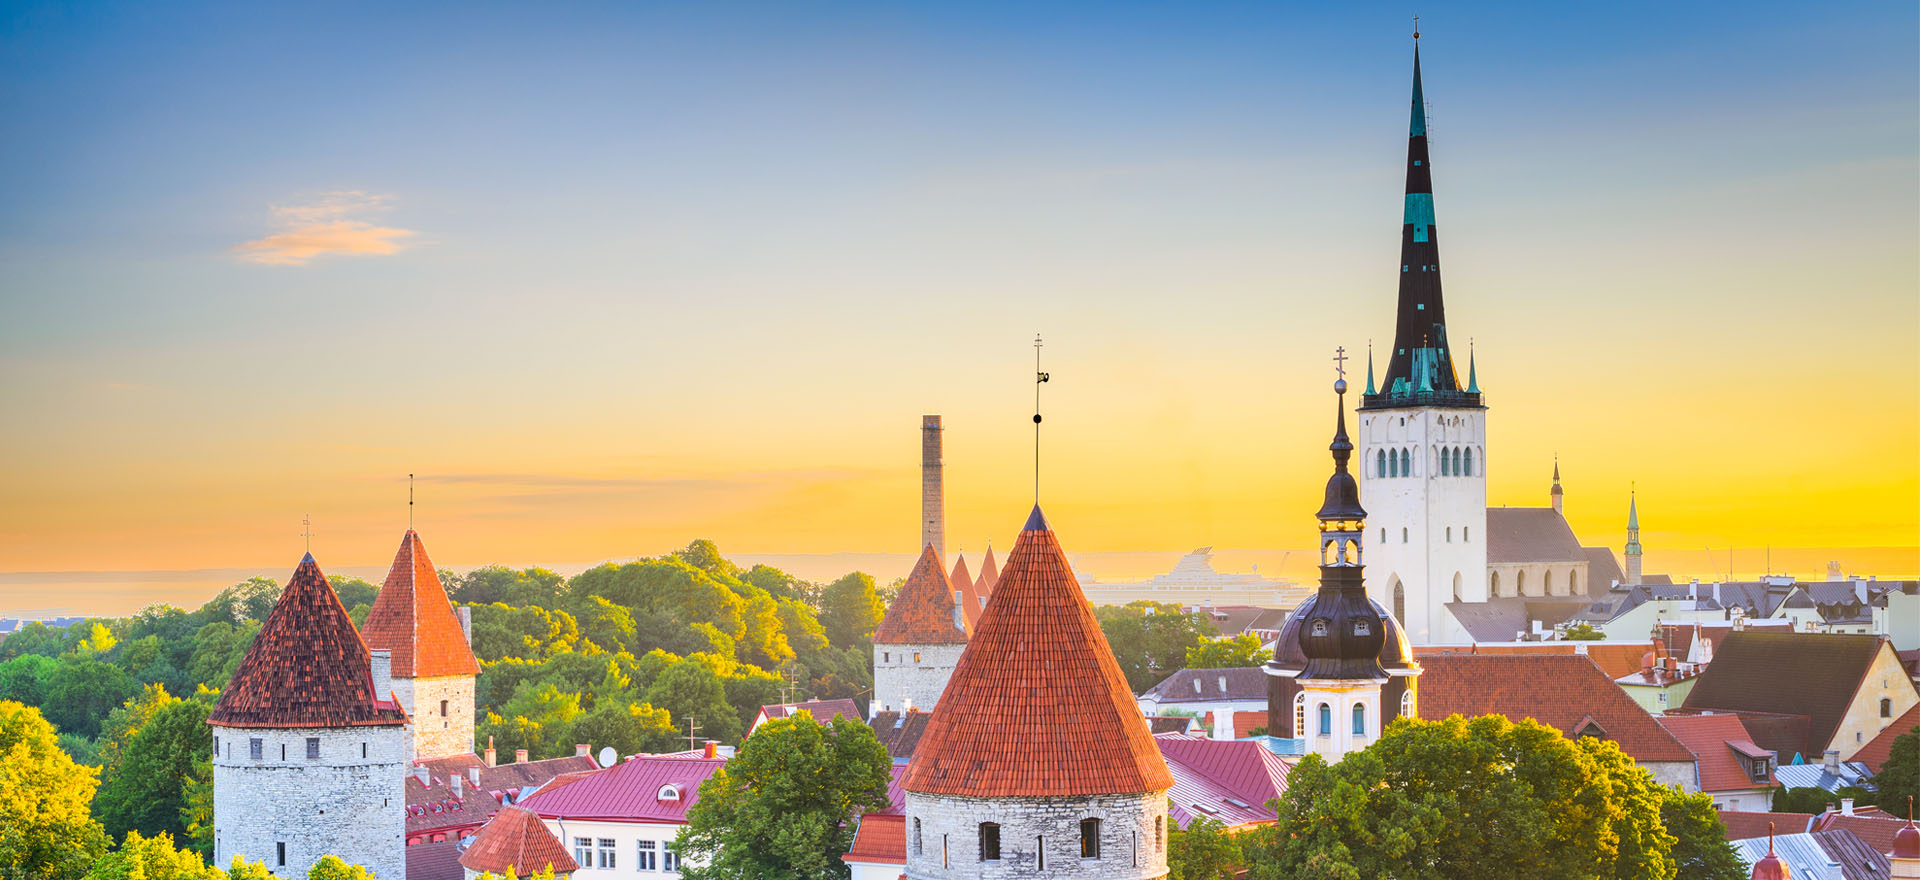 Bright skyline over the town of Tallinn